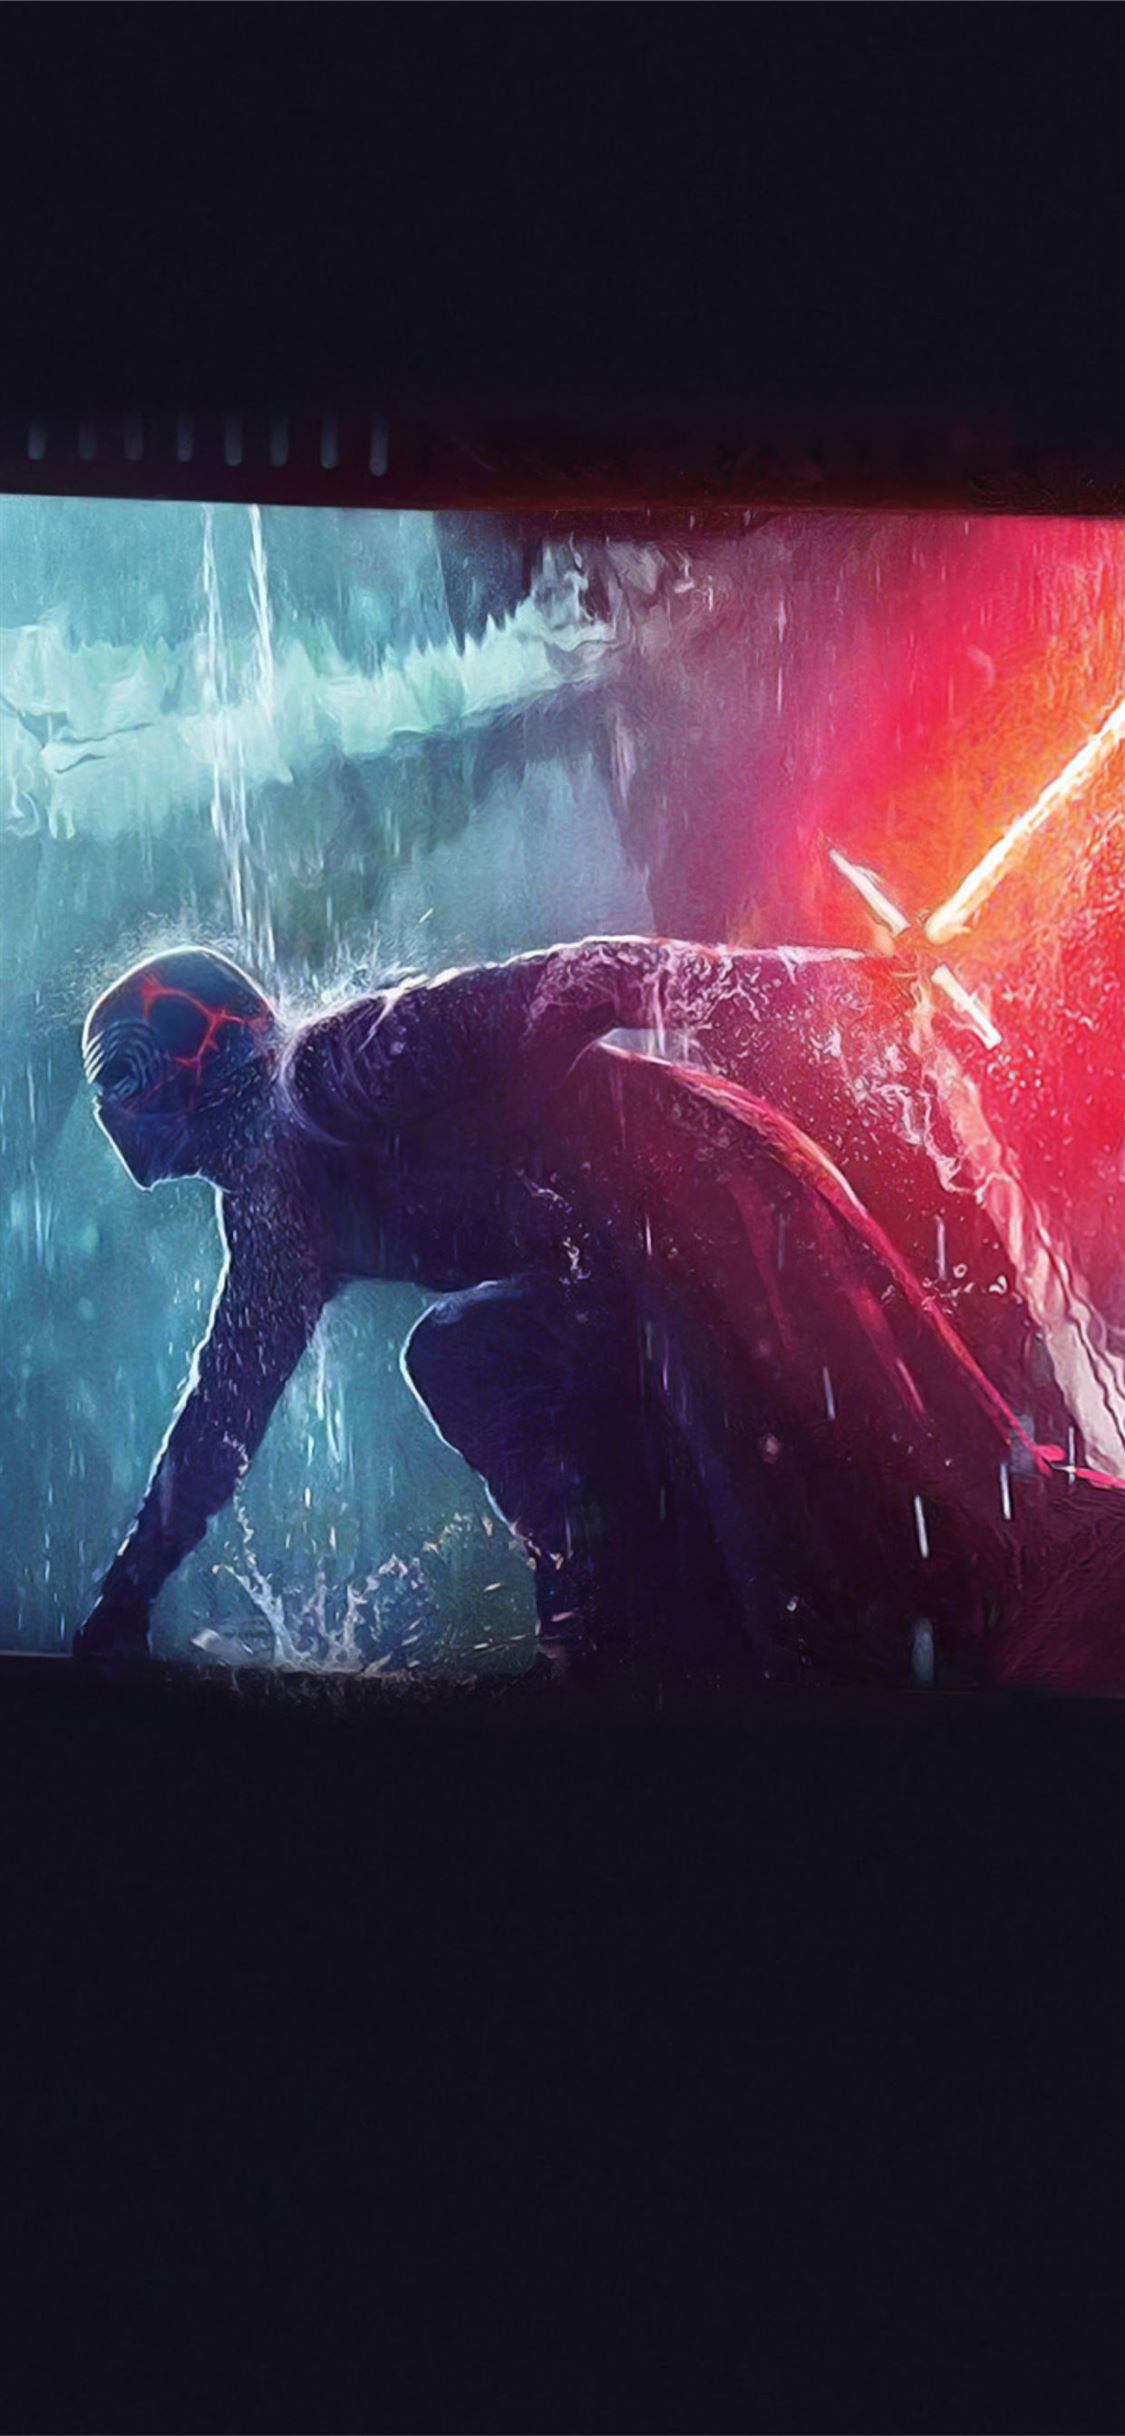 Star Wars The Rise Of Skywalker Rey Vs Kylo Ren Iphone X Wallpapers Free Download